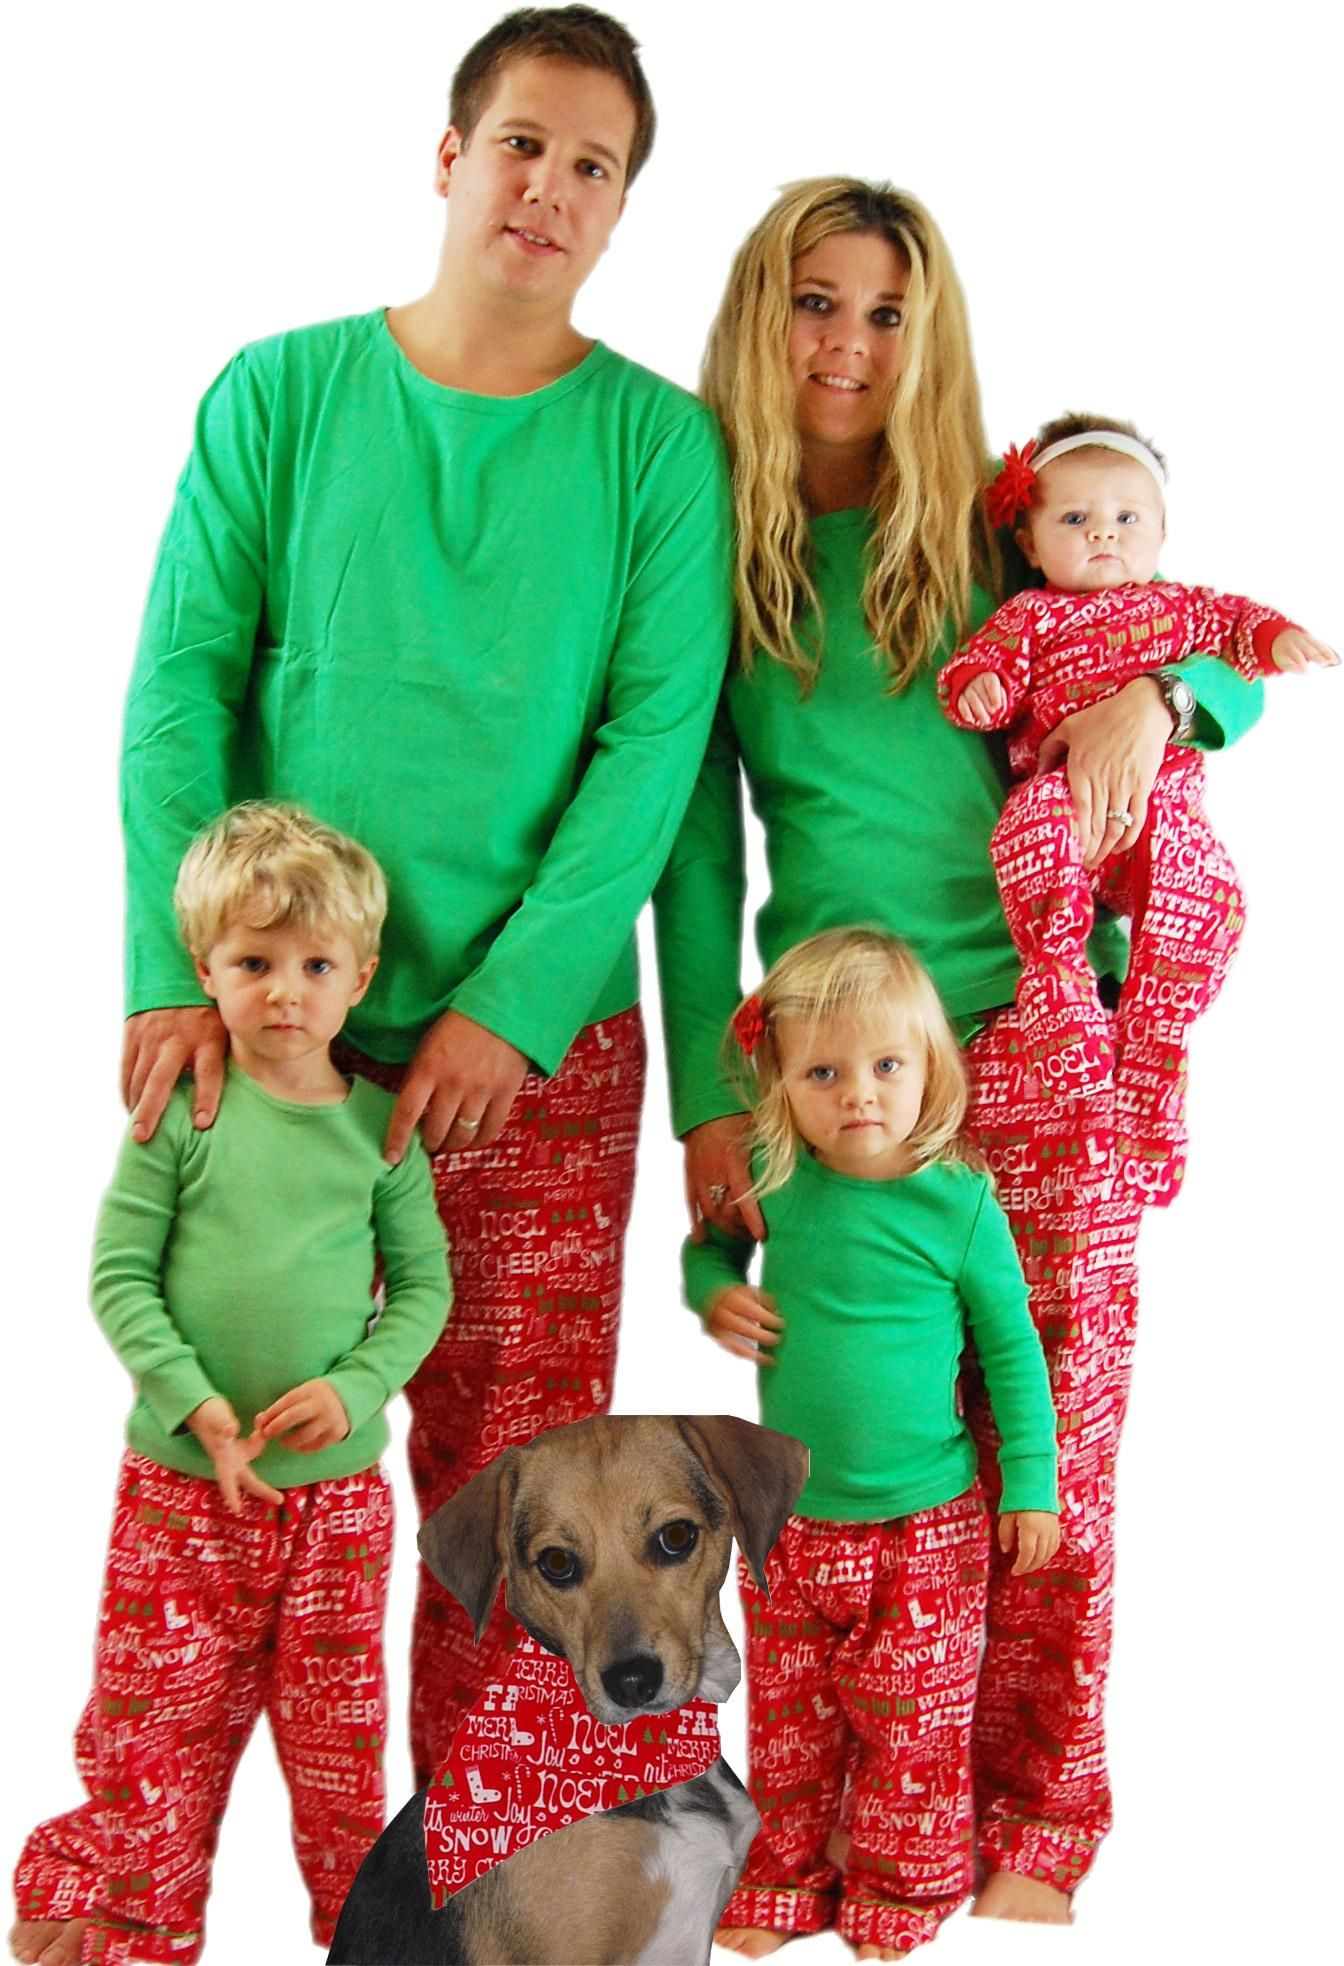 matching jammies for the whole clan? yes please